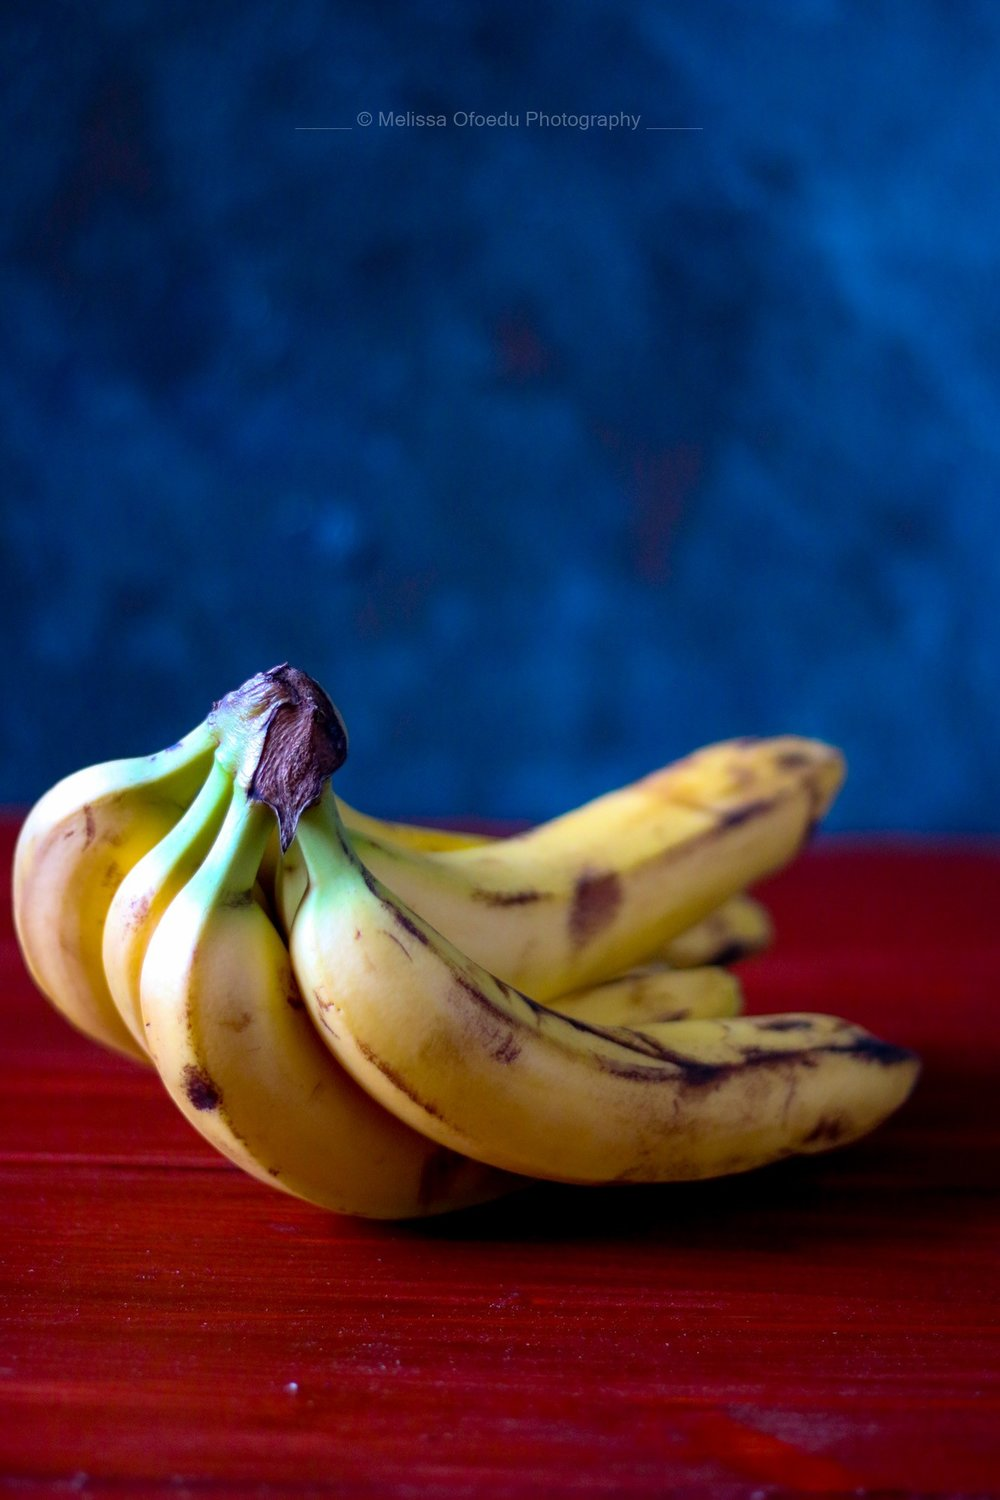 Banana-by-Melissa-Ofoedu-for-A-Sweet-Point-of-View-1.jpg